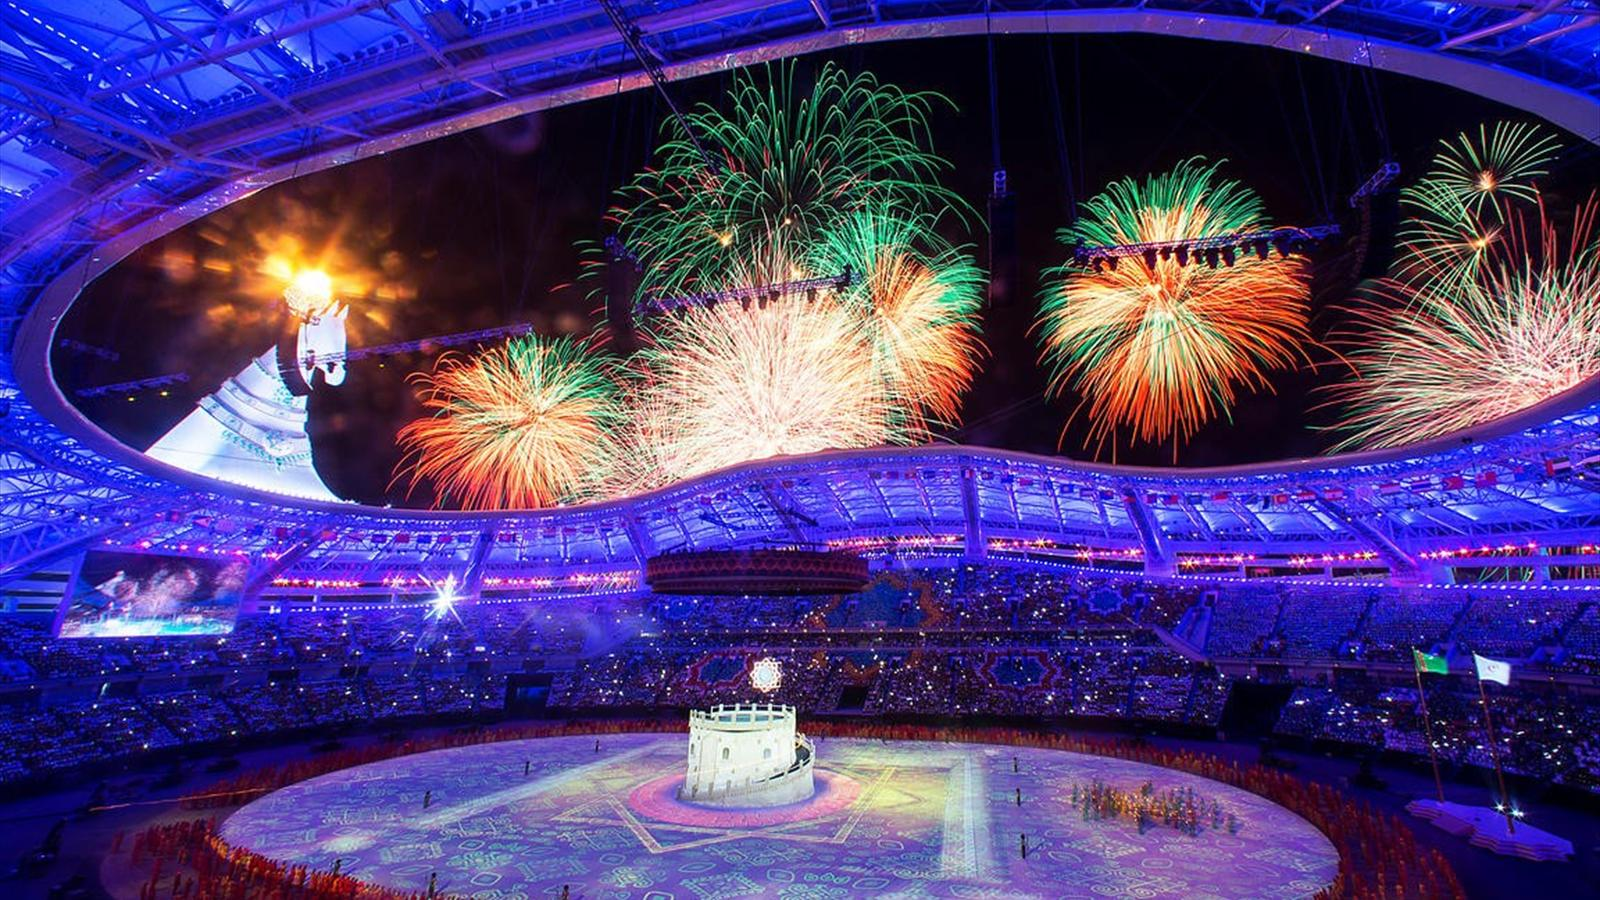 History made as Ashgabat 2017 gets under way with spectacular Opening Ceremony